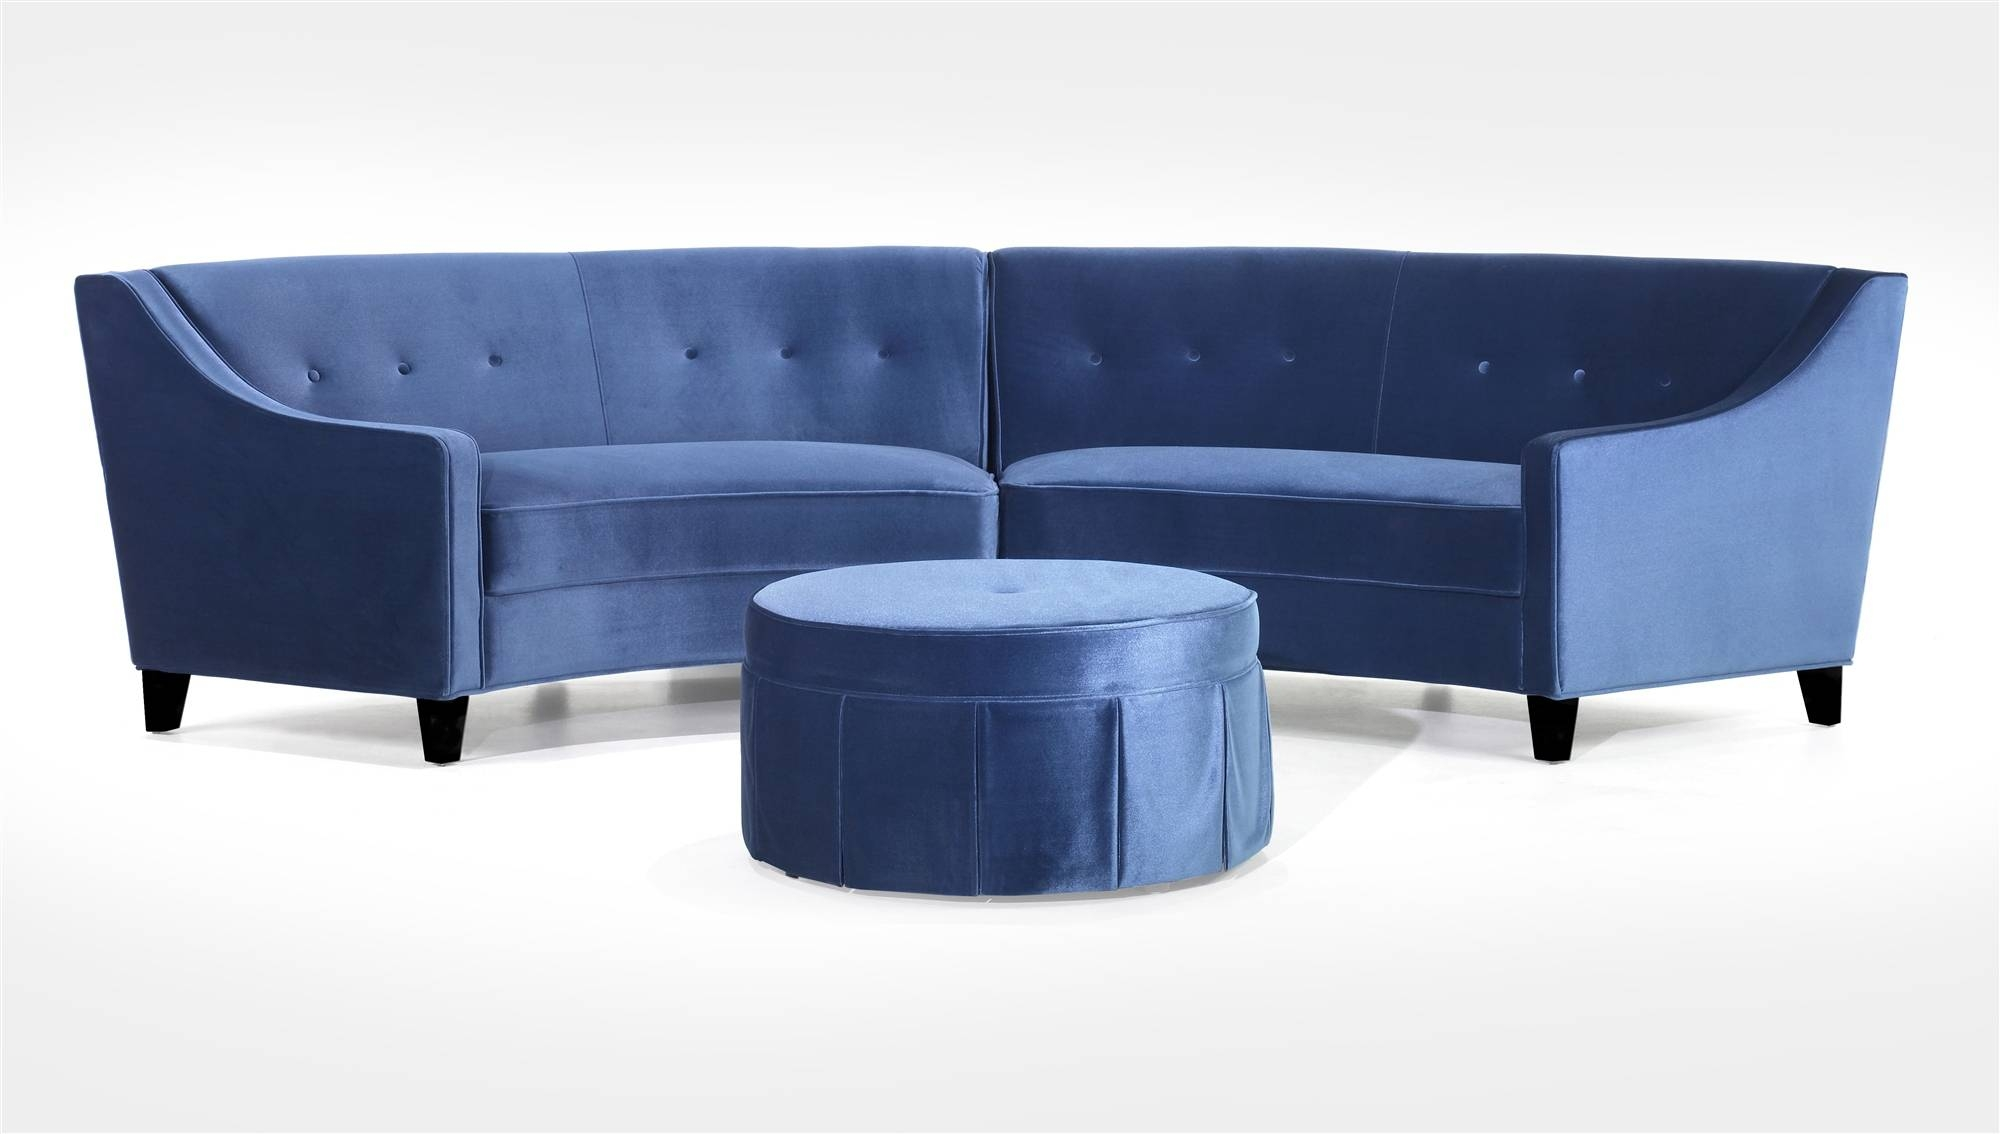 Furniture: Blue Curved Sectional Sofa For Sectional Sofas Ideas pertaining to Round Sectional Sofa (Image 8 of 30)